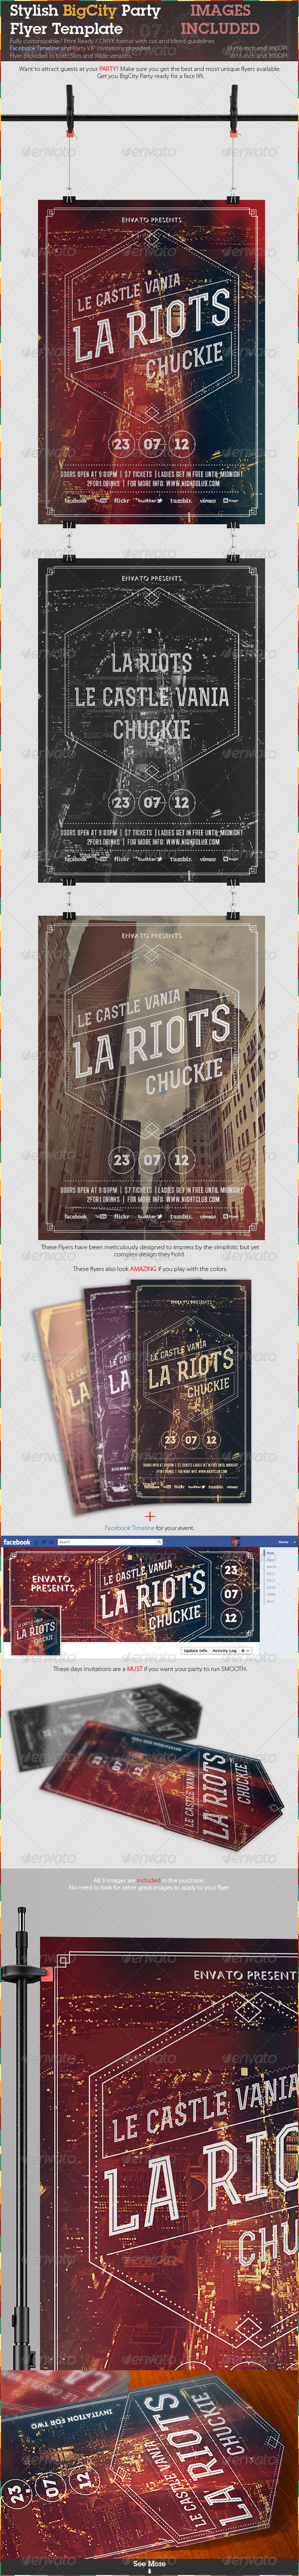 GraphicRiver Stylish BigCity Party Flyer Template 2582264